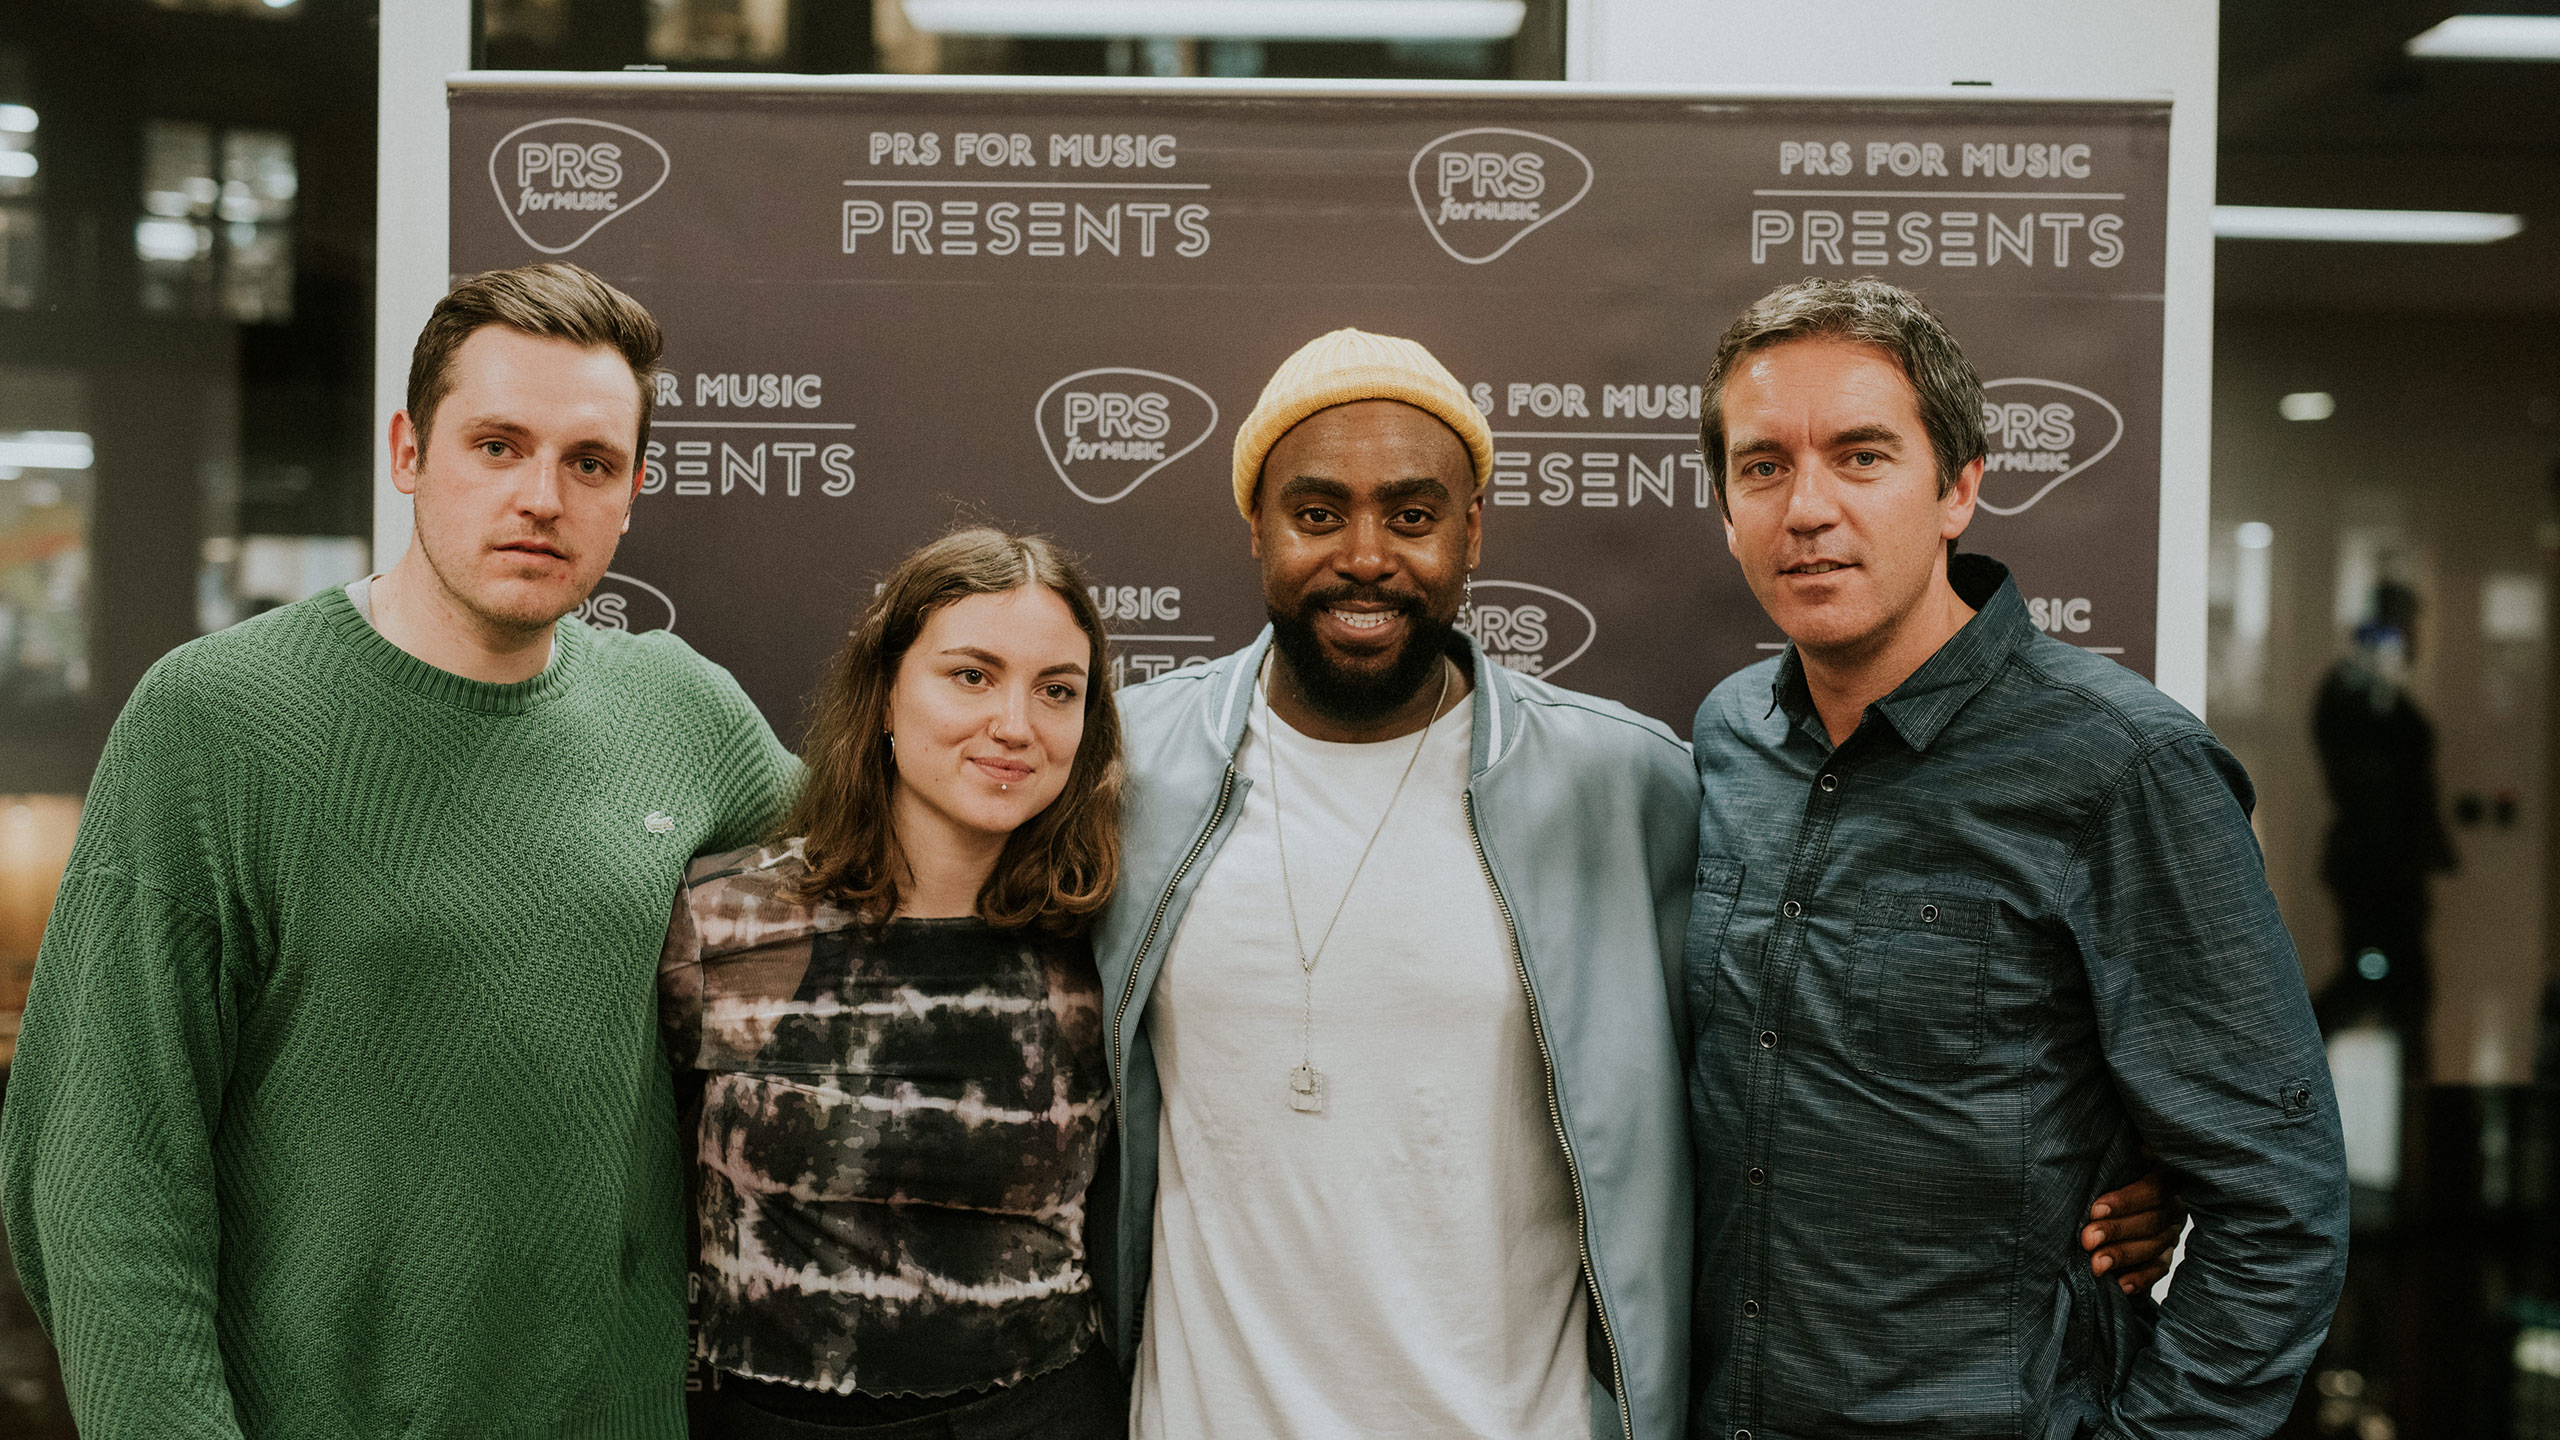 David Bargery (events), Amy Field (events), Jodie Abacus and Paul Sims (head of marketing) at PRS for Music Presents